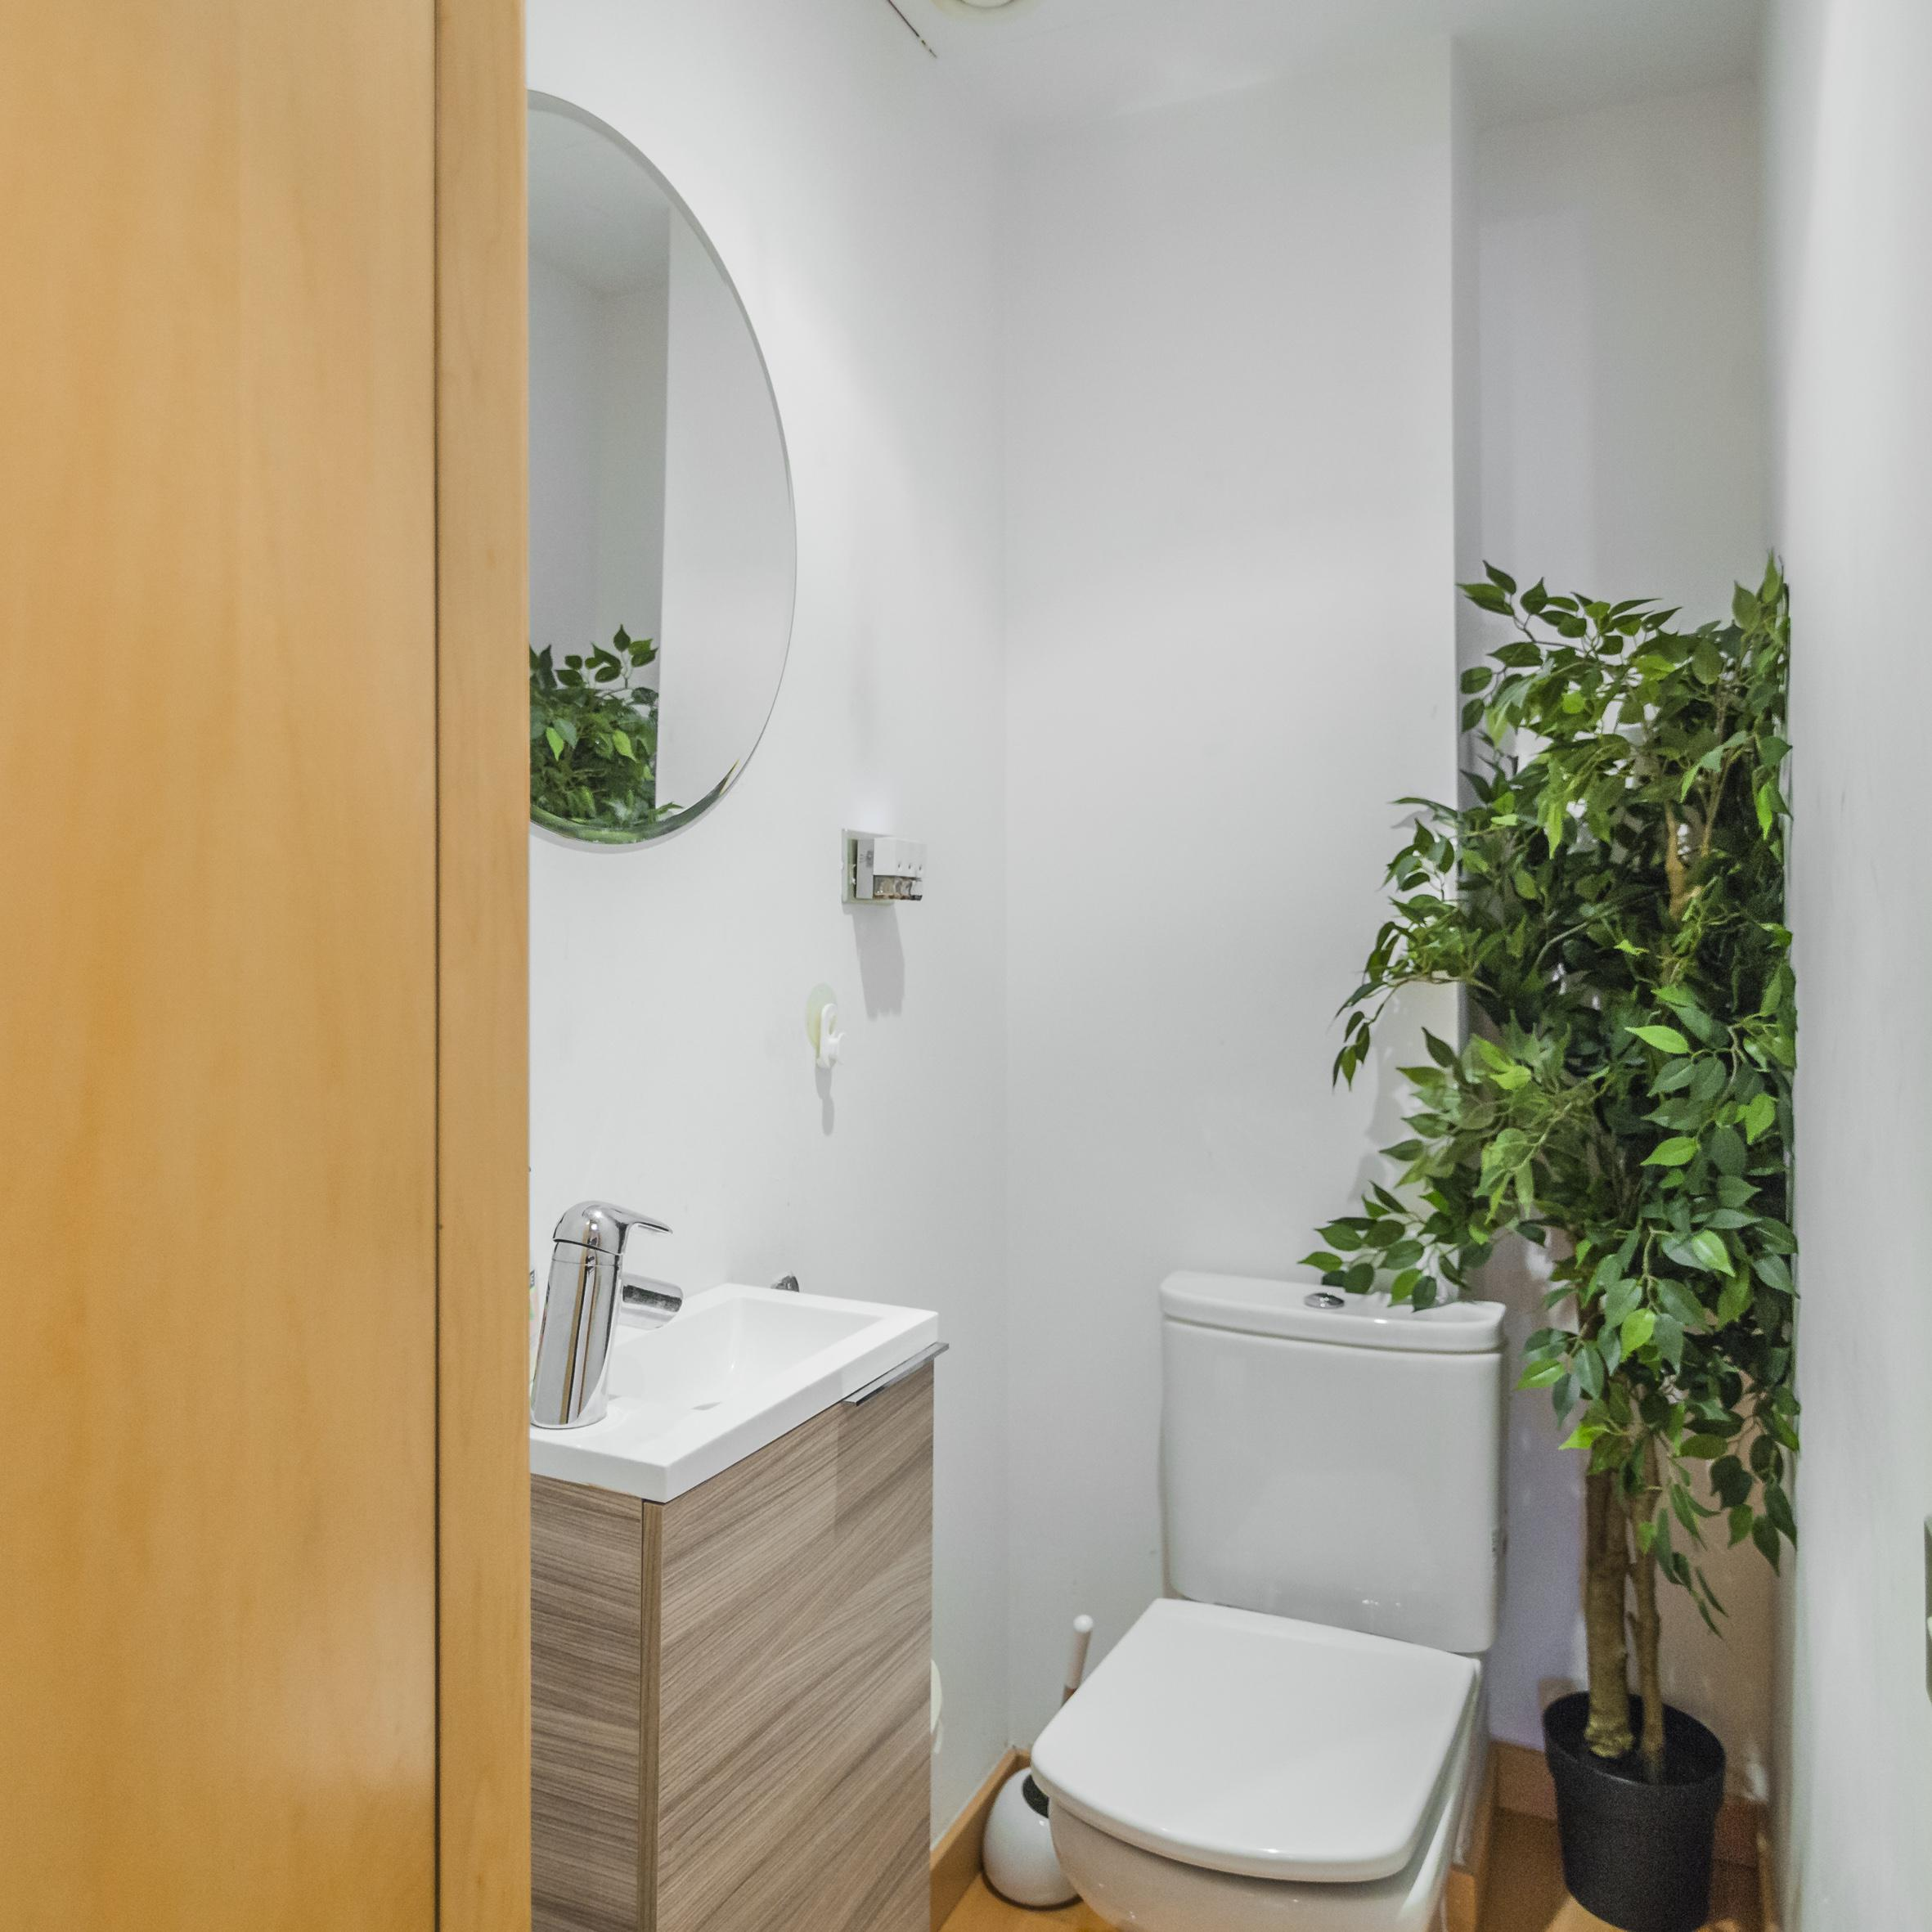 109651 Apartment for sale in Eixample, Dreta Eixample 12